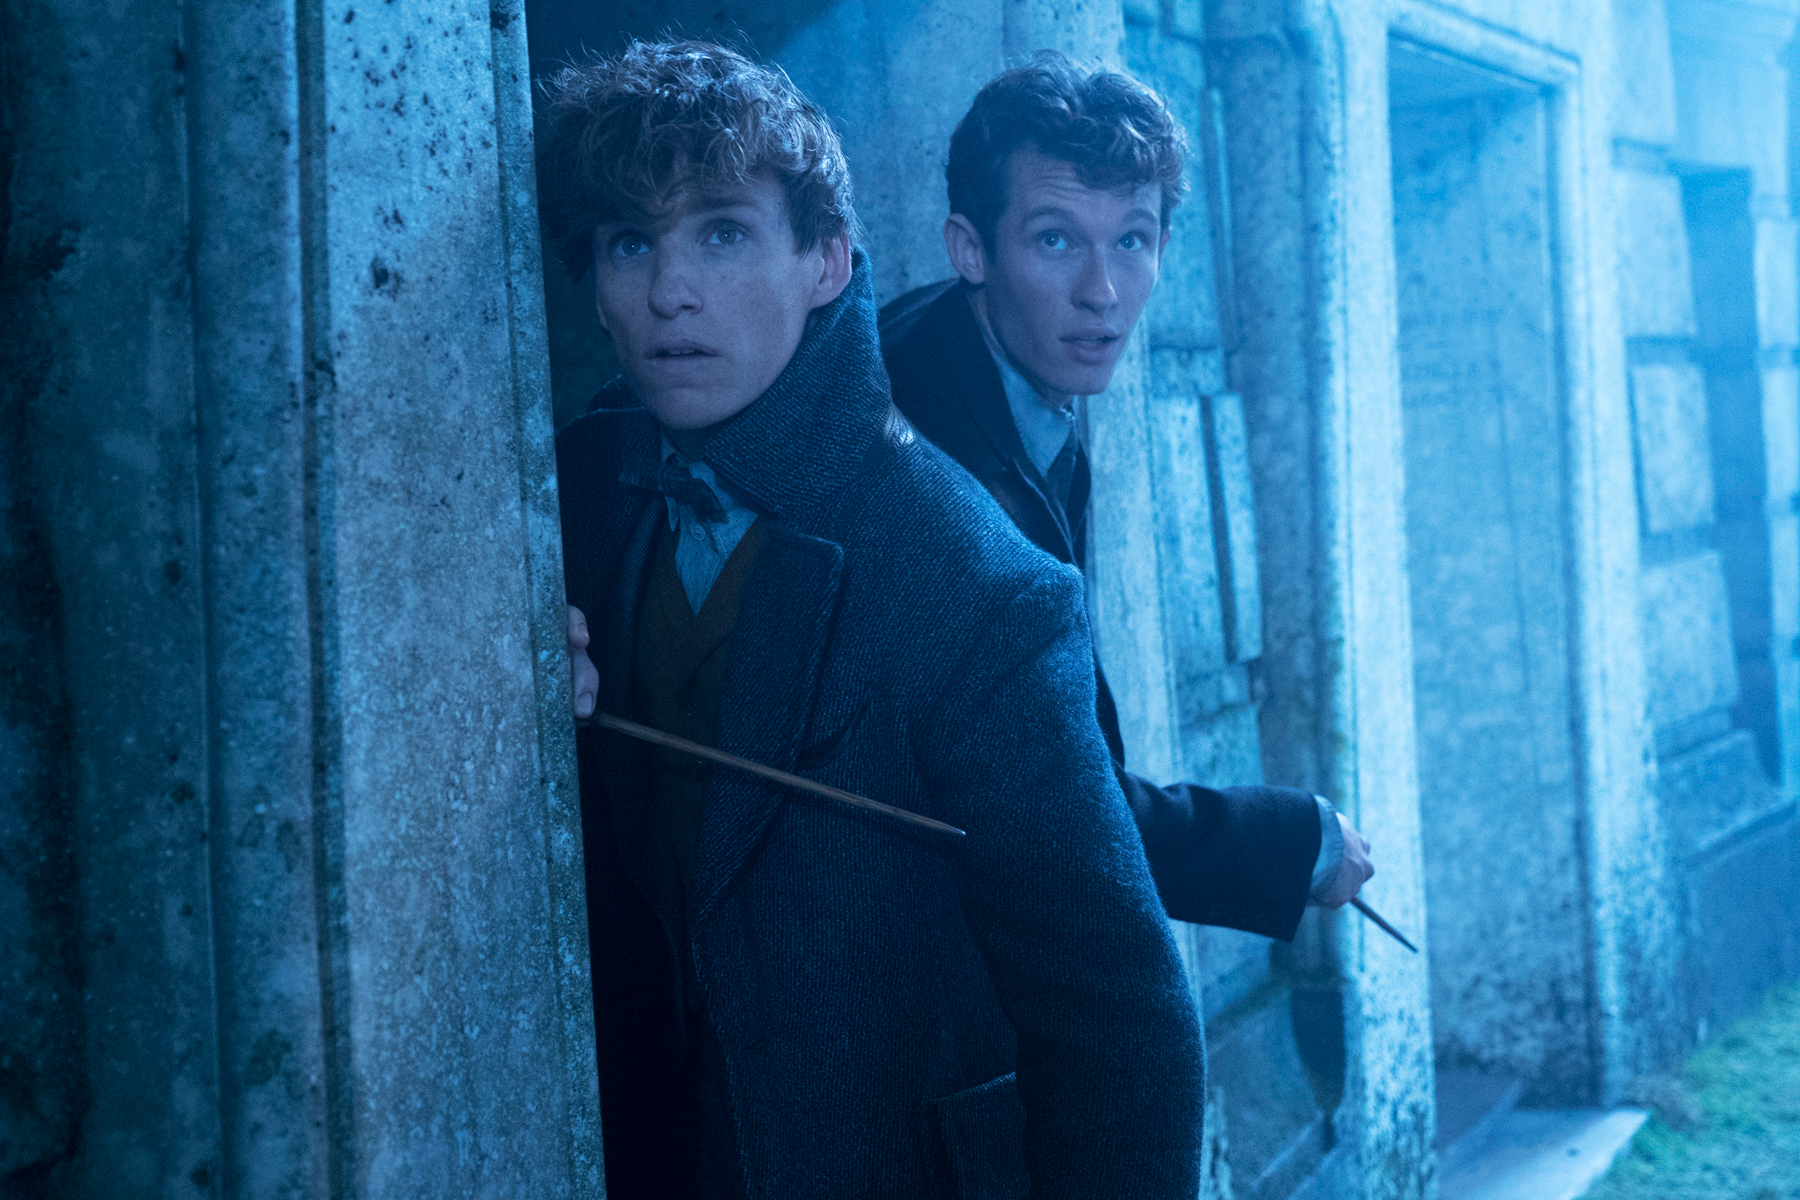 https://www.rollingstone.com/wp-content/uploads/2018/11/Fantastic-Beasts-The-Crimes-of-Grindelwald-still-2018-warner-bros.jpg?crop=900:600&width=440